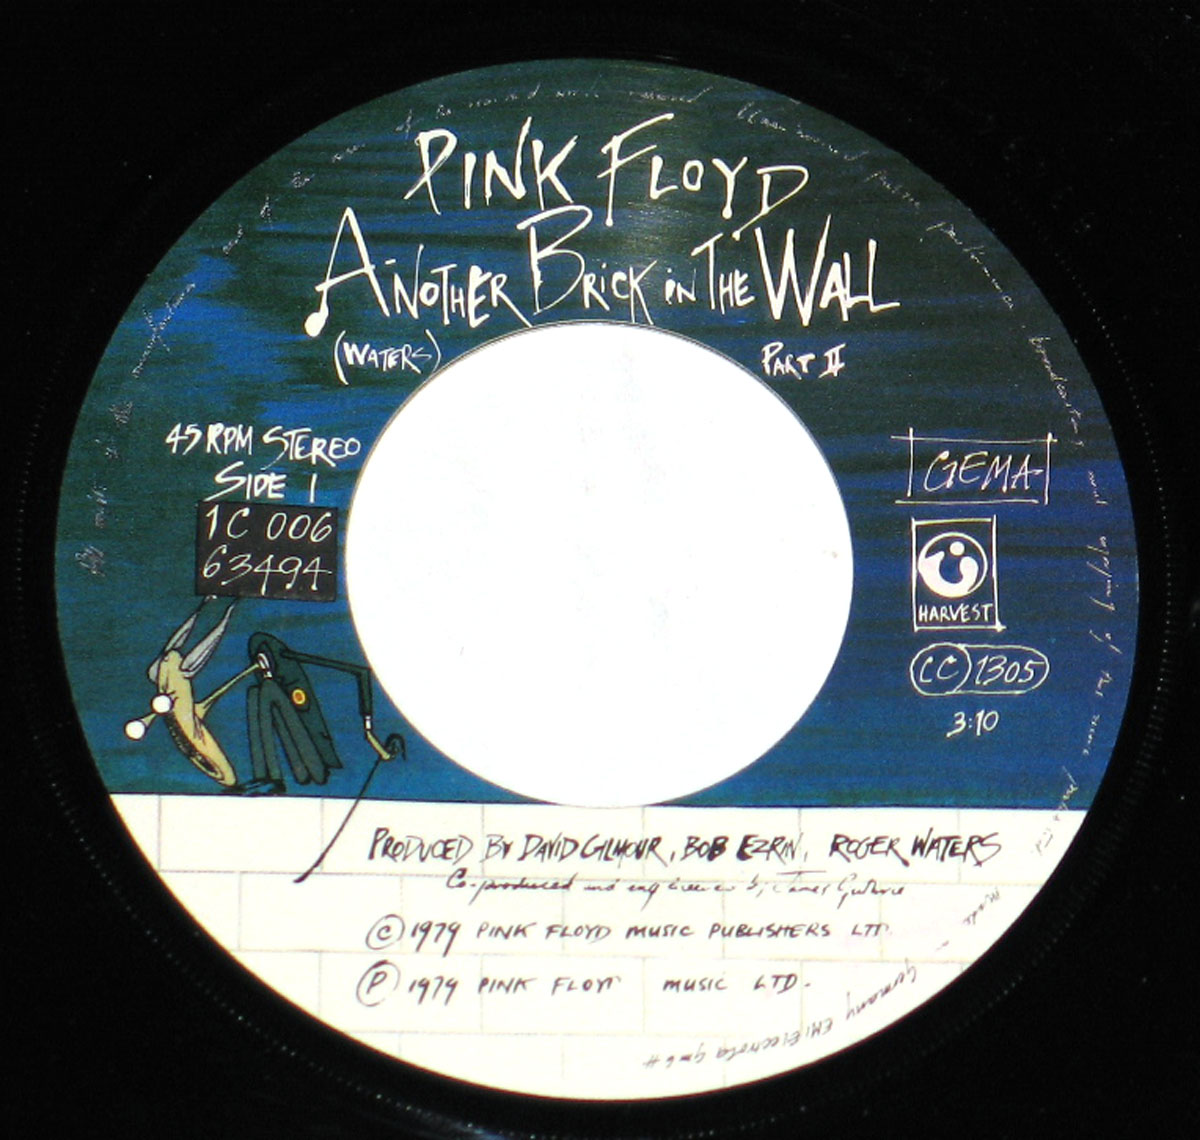 High Resolution Photo #2 PINK FLOYD Wall Part II